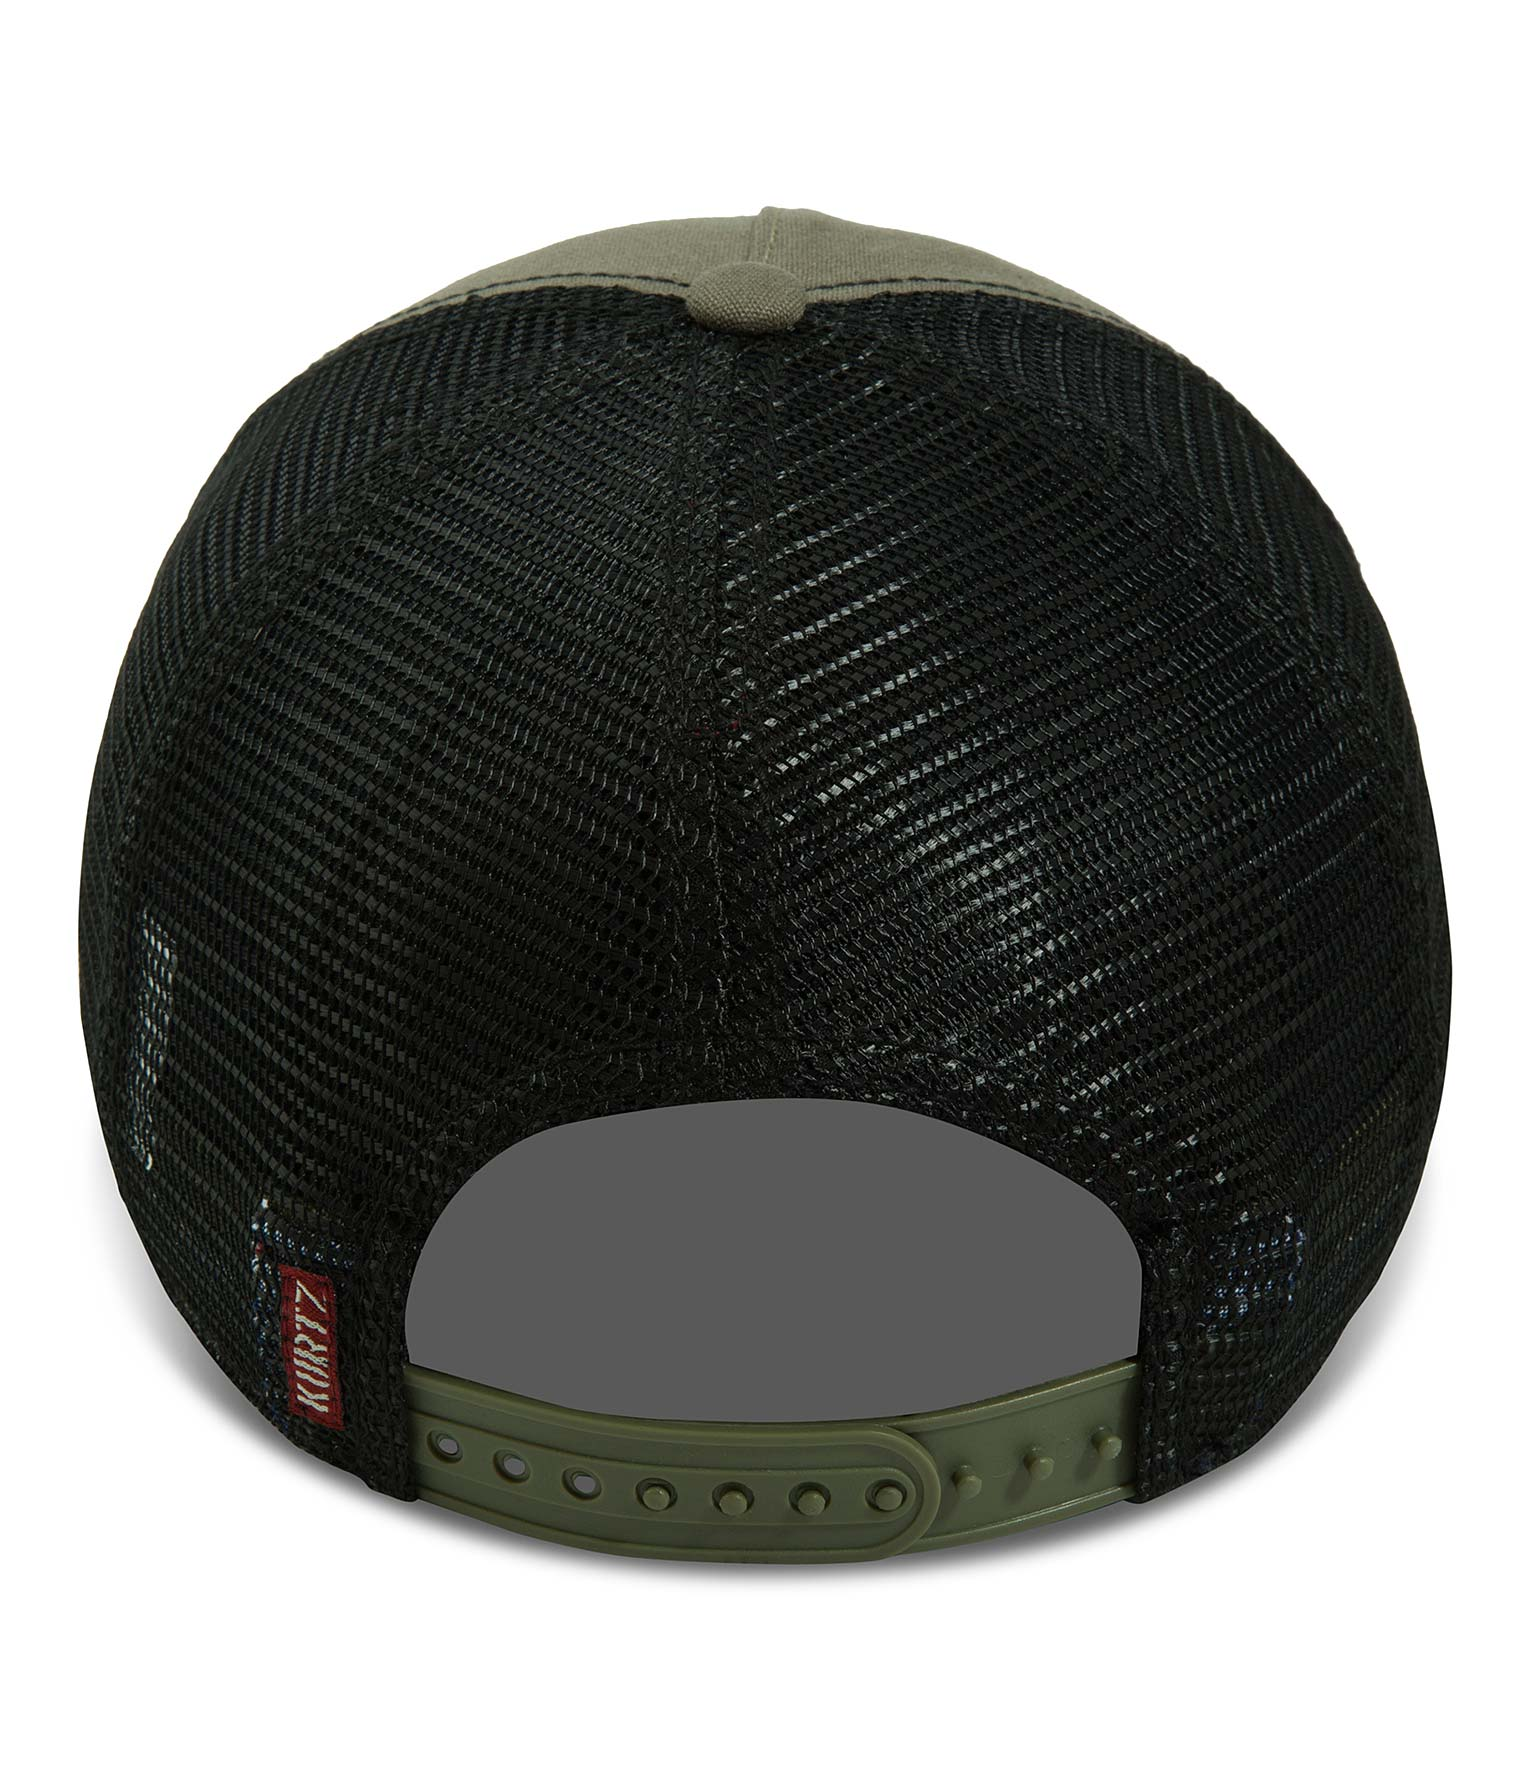 Spec Trucker Baseball Cap